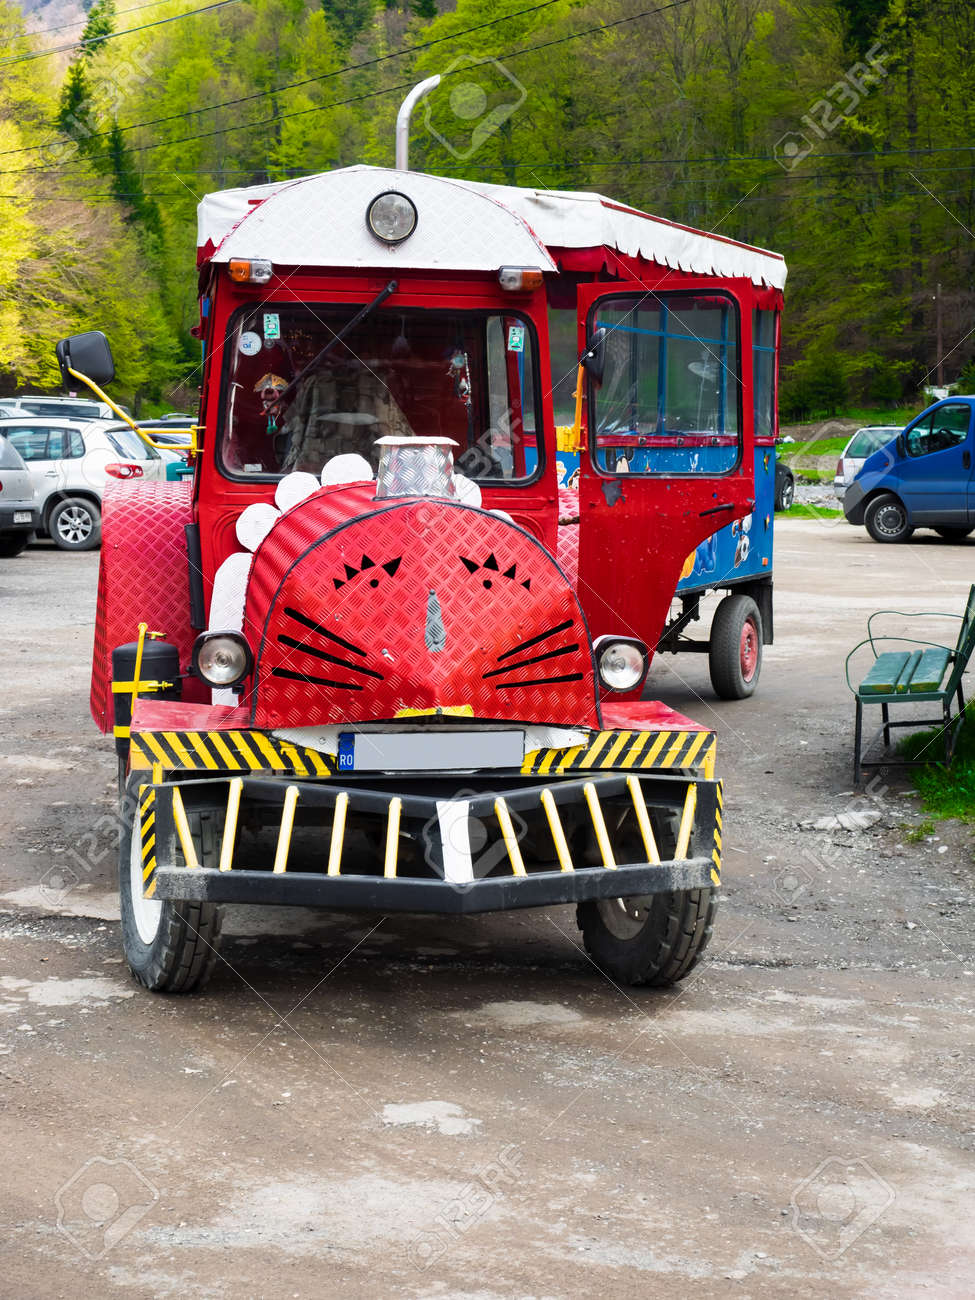 Busteni, Romania - May 3, 2014: A red tractor with a trailer acts as a means of transportation between Busteni Train Station and Gura Diham chalet - 164519673